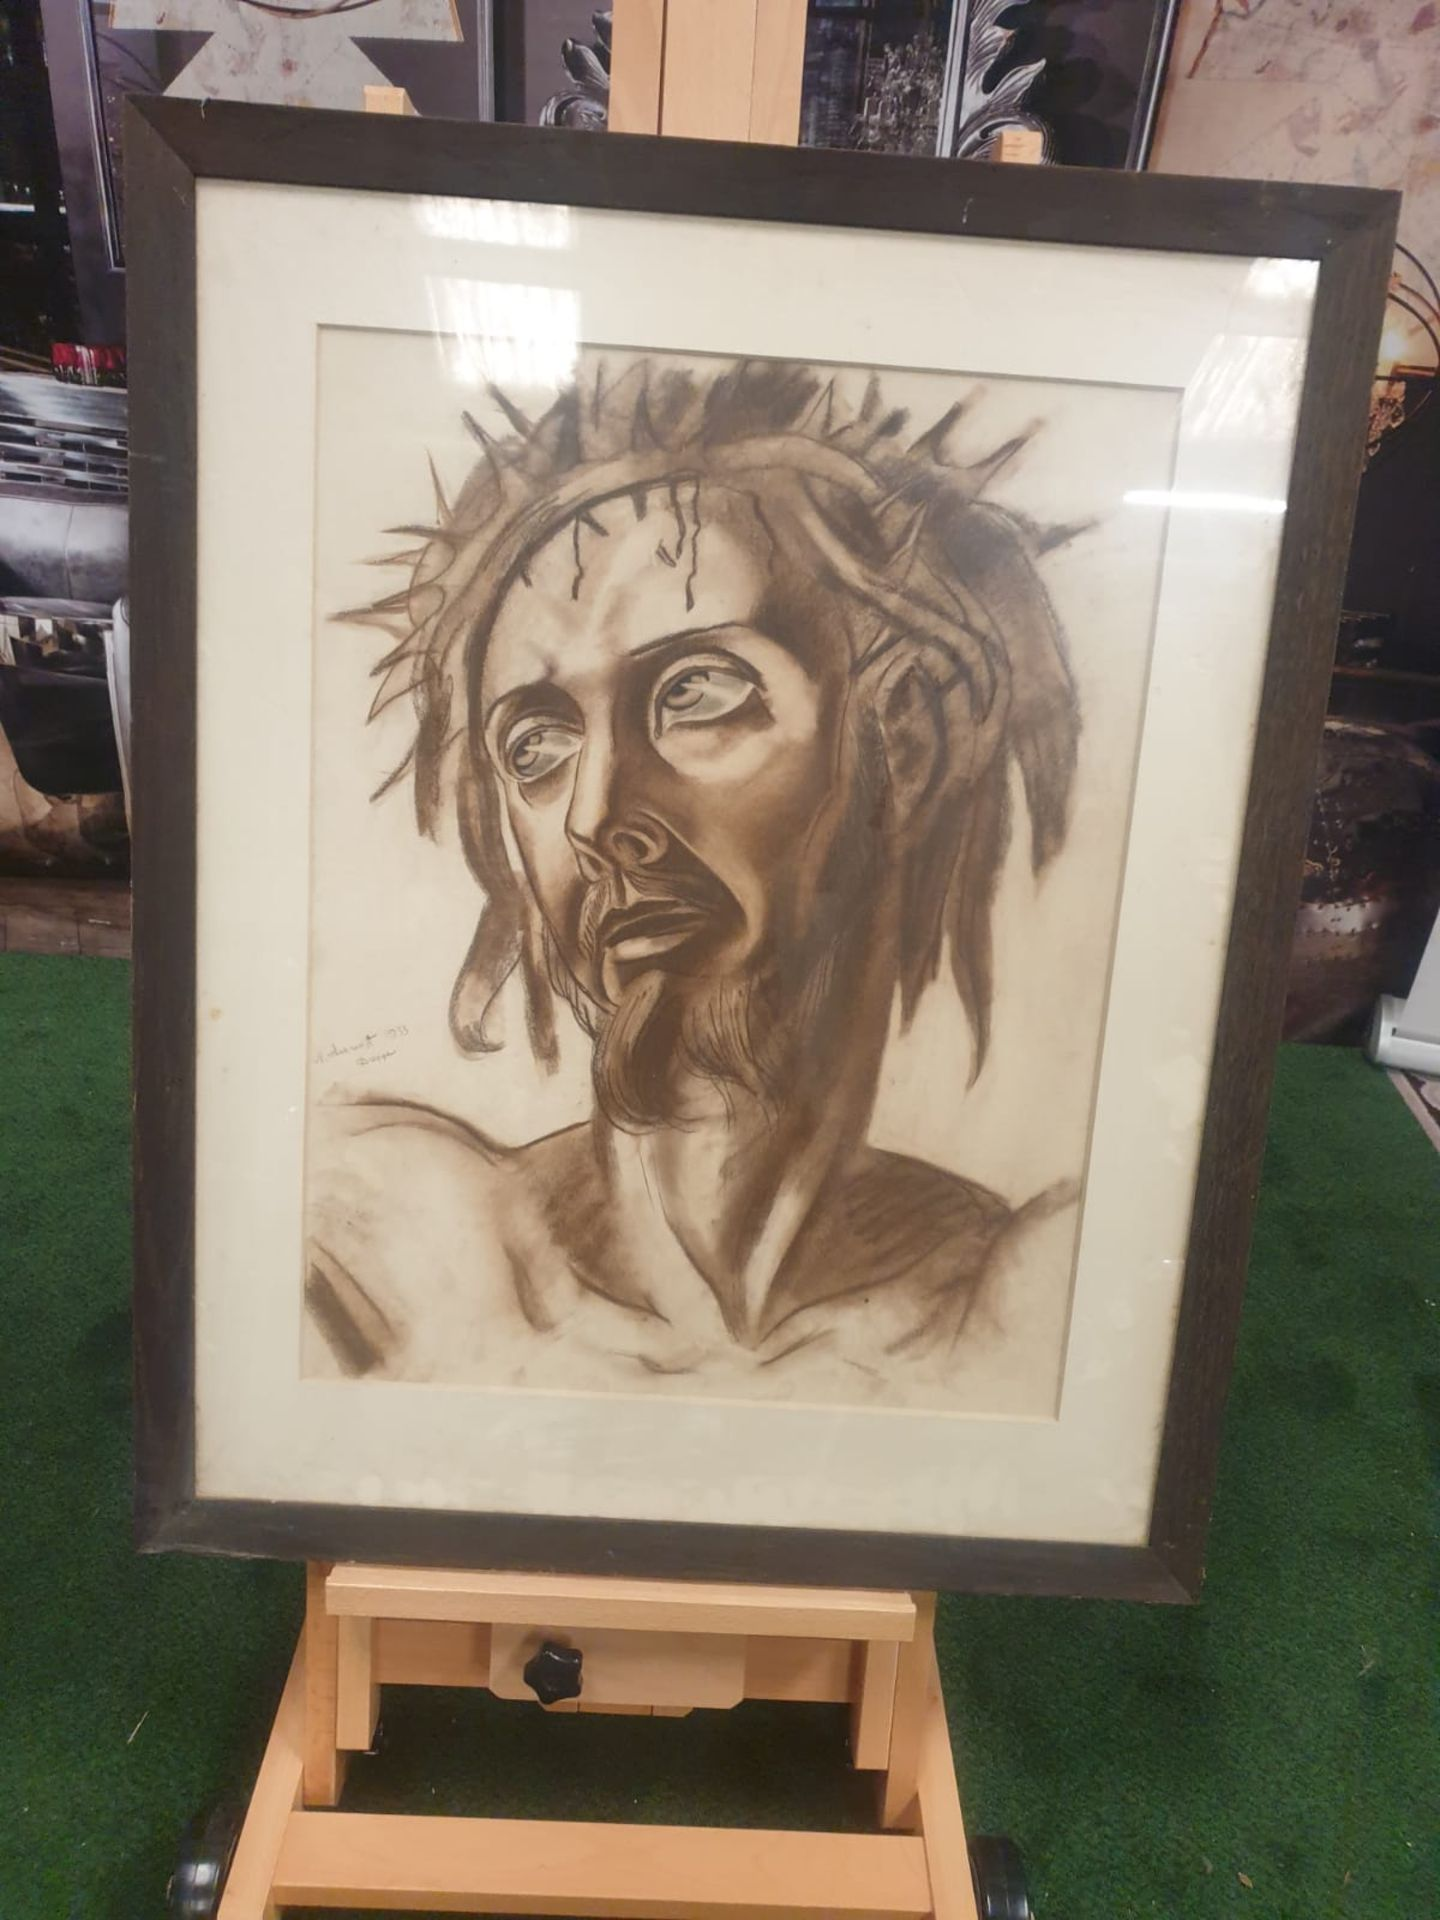 Drawing wash attributed to Michail Semiovitch Rodionoff 1885-1956 Christ with crown of thorns c. - Image 2 of 5